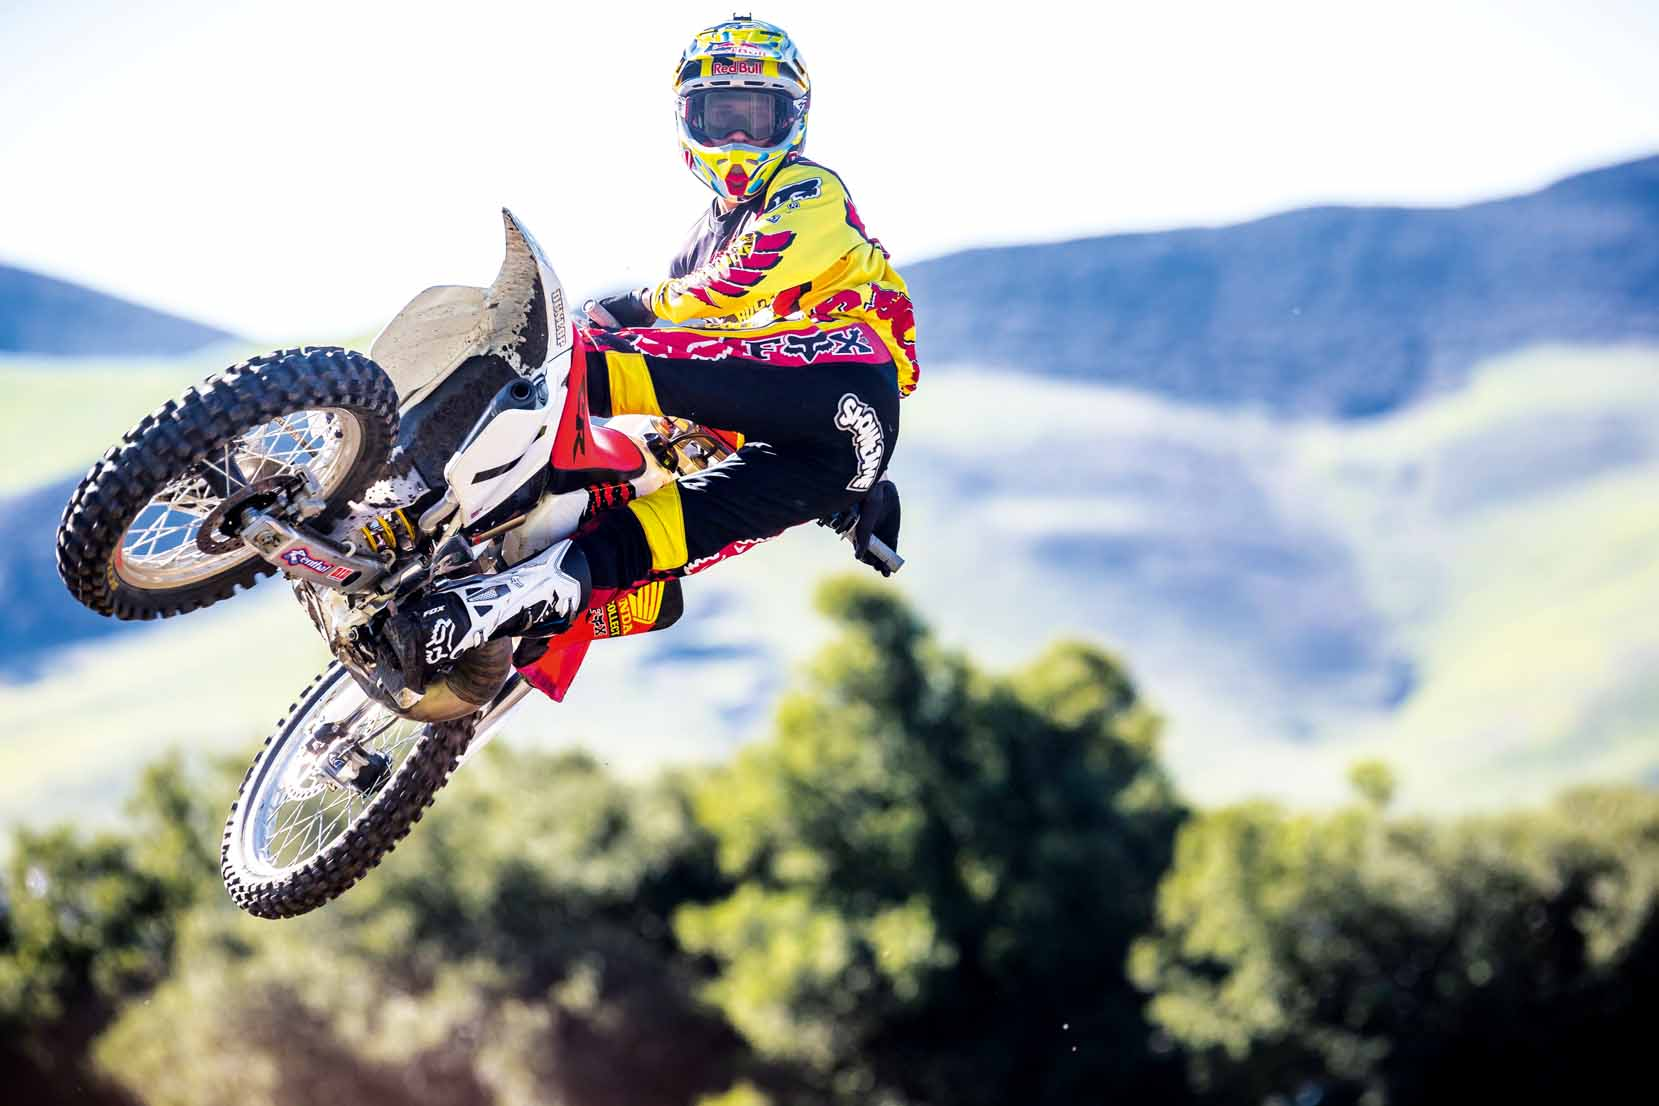 Ken Roczen rides Jeremy McGrath's 1996 Honda CR250R during a video shoot recreating segments from the original Terra Firma 2 motocross video at Castillo Ranch in Los Alamos, California, USA on 28 December 2016. // Garth Milan/Red Bull Content Pool // P-20170109-01472 // Usage for editorial use only // Please go to www.redbullcontentpool.com for further information. //